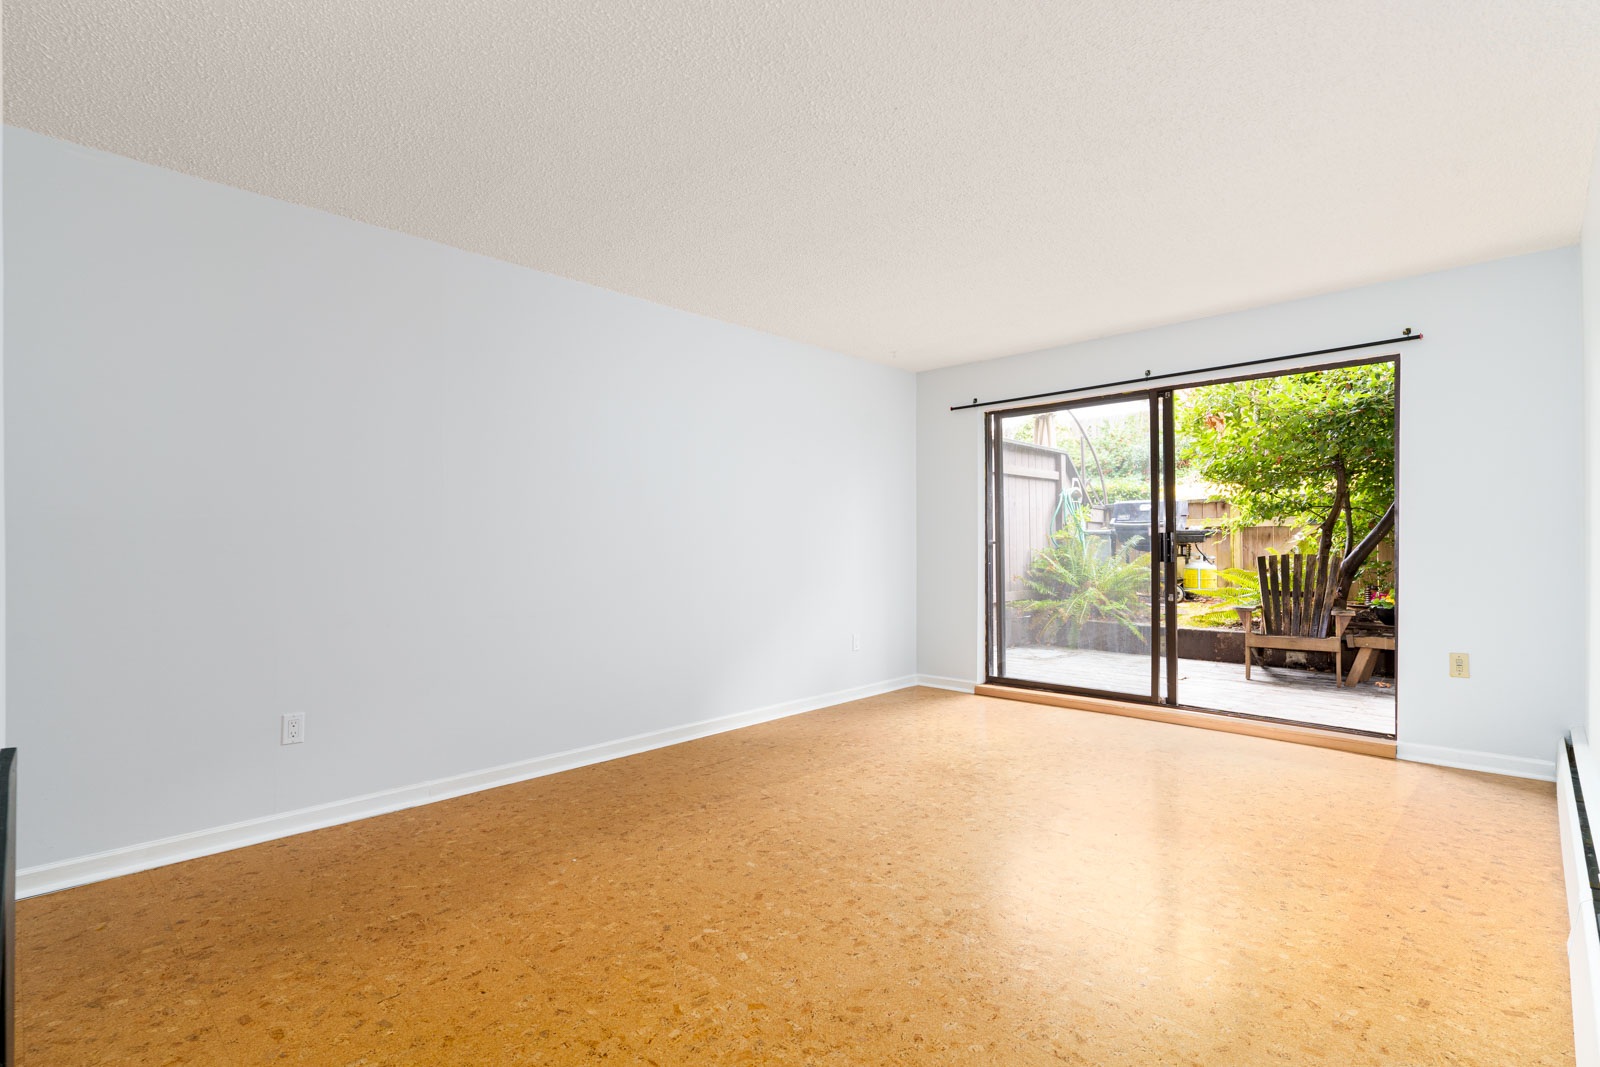 spacious and bright condo in landmark manor with large backyard in east vancouver;